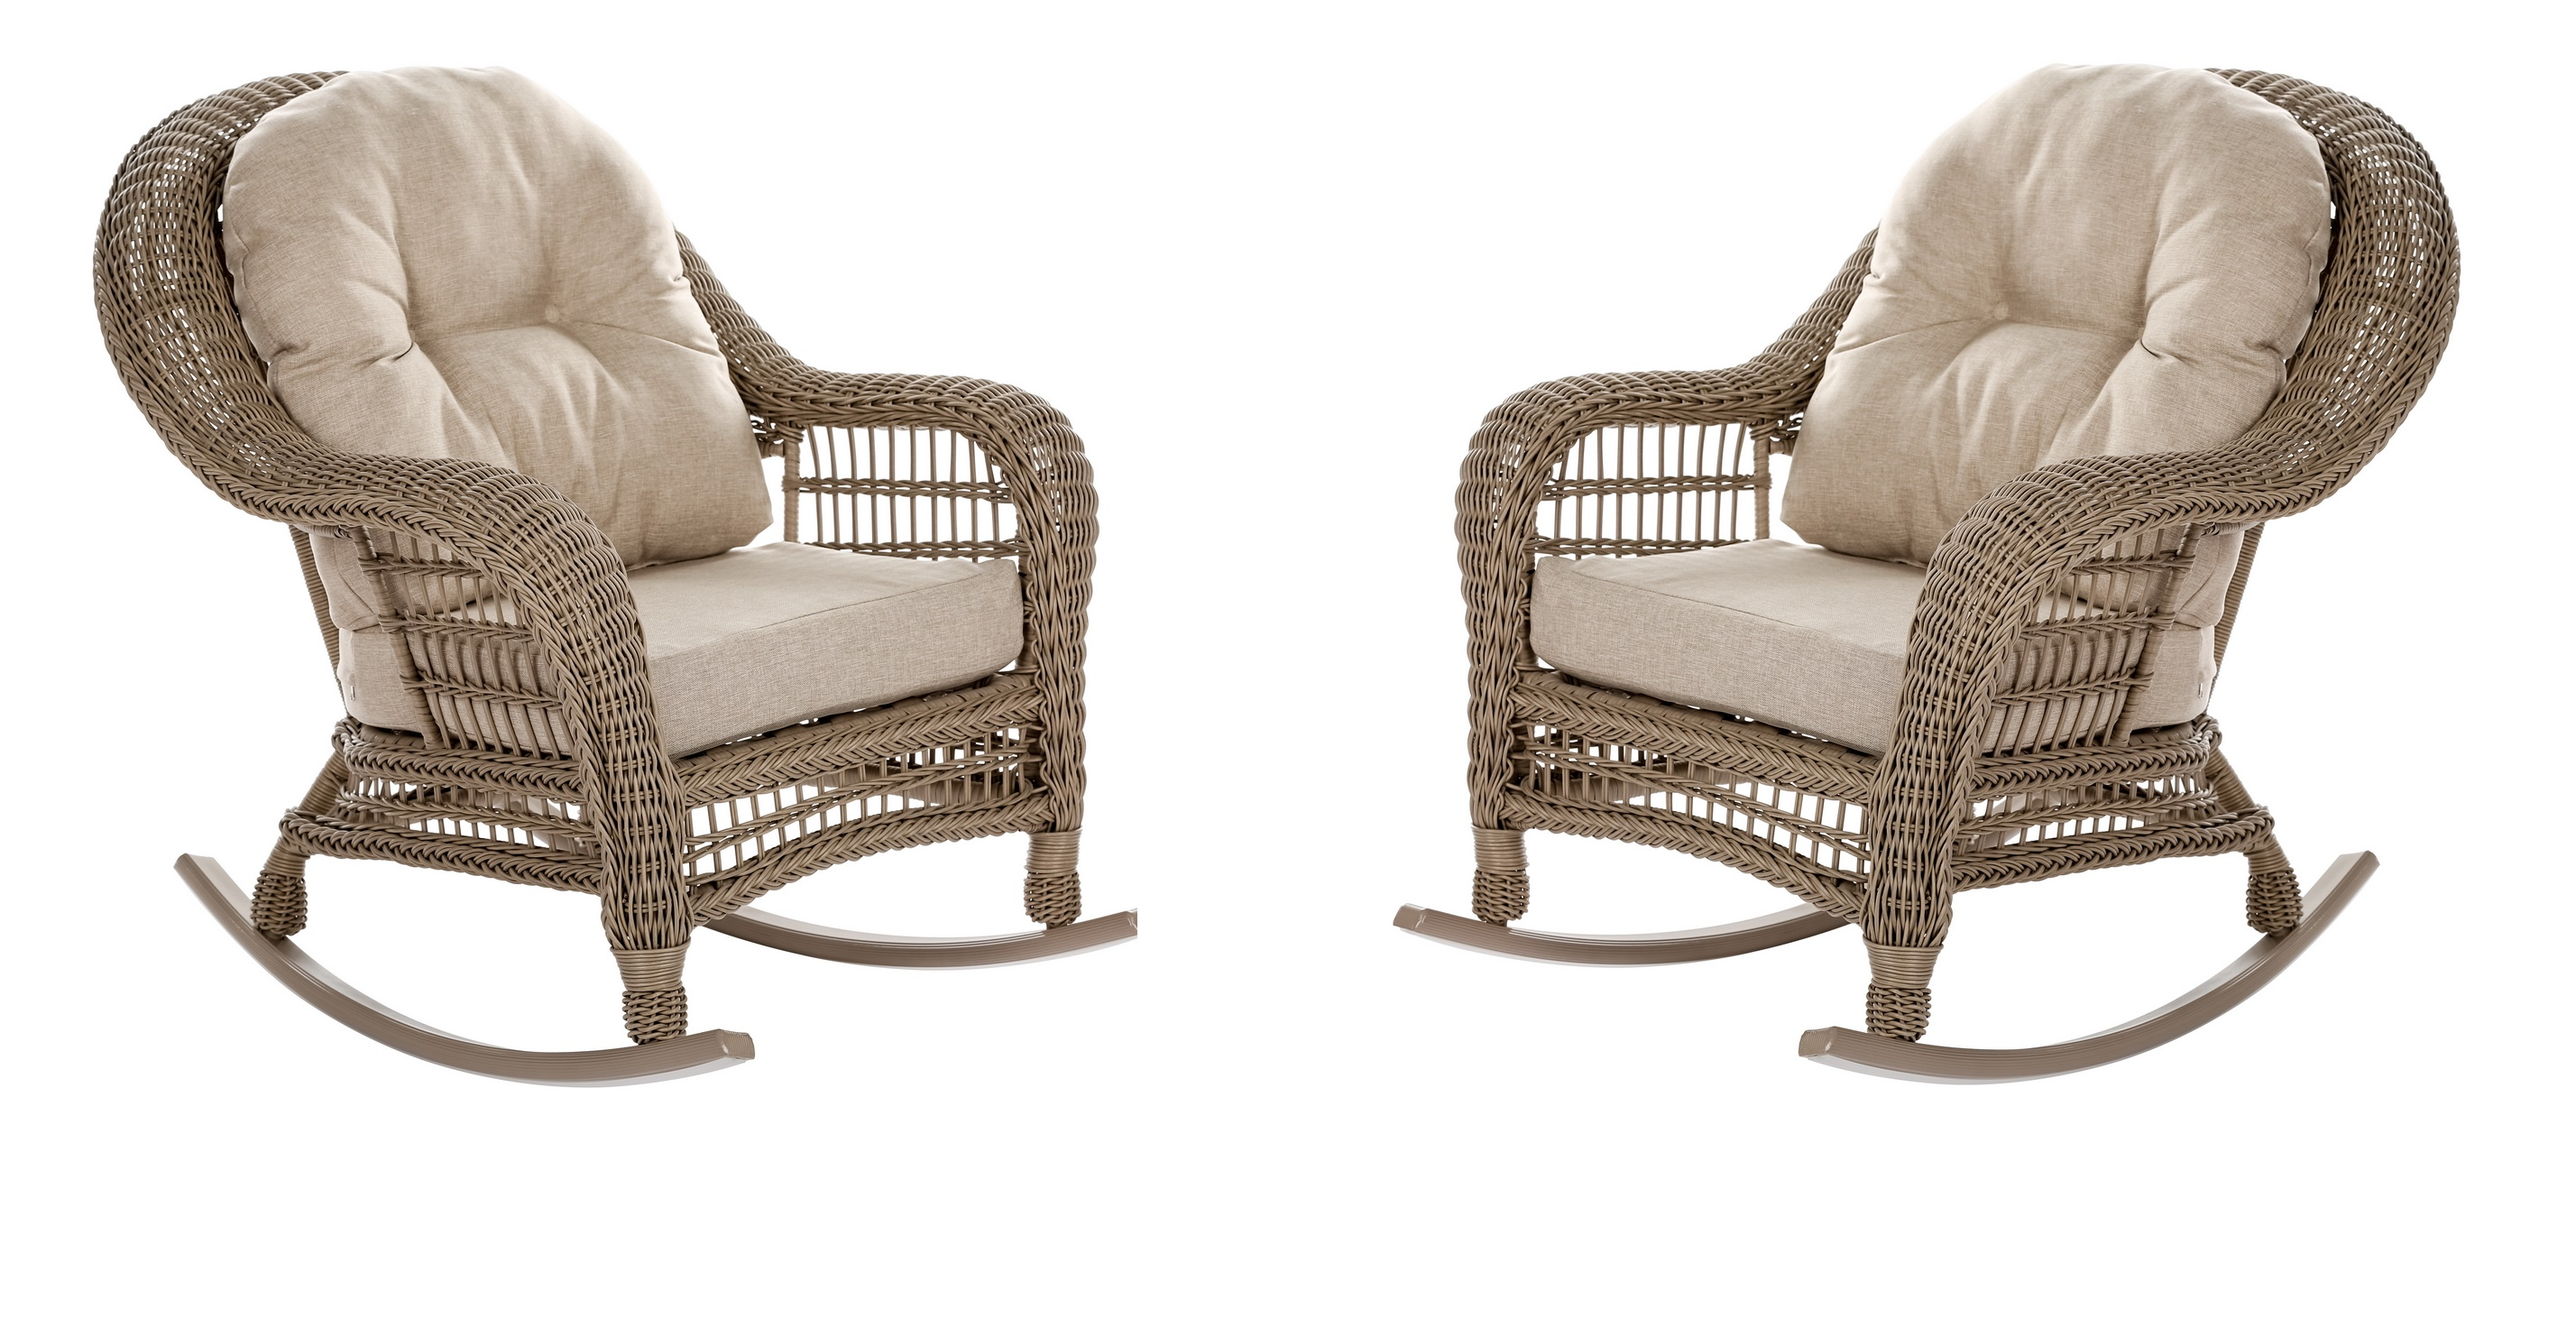 W Unlimited Saturn Collection Outdoor Garden Patio 2 PC Rocking Chair  Furniture Set